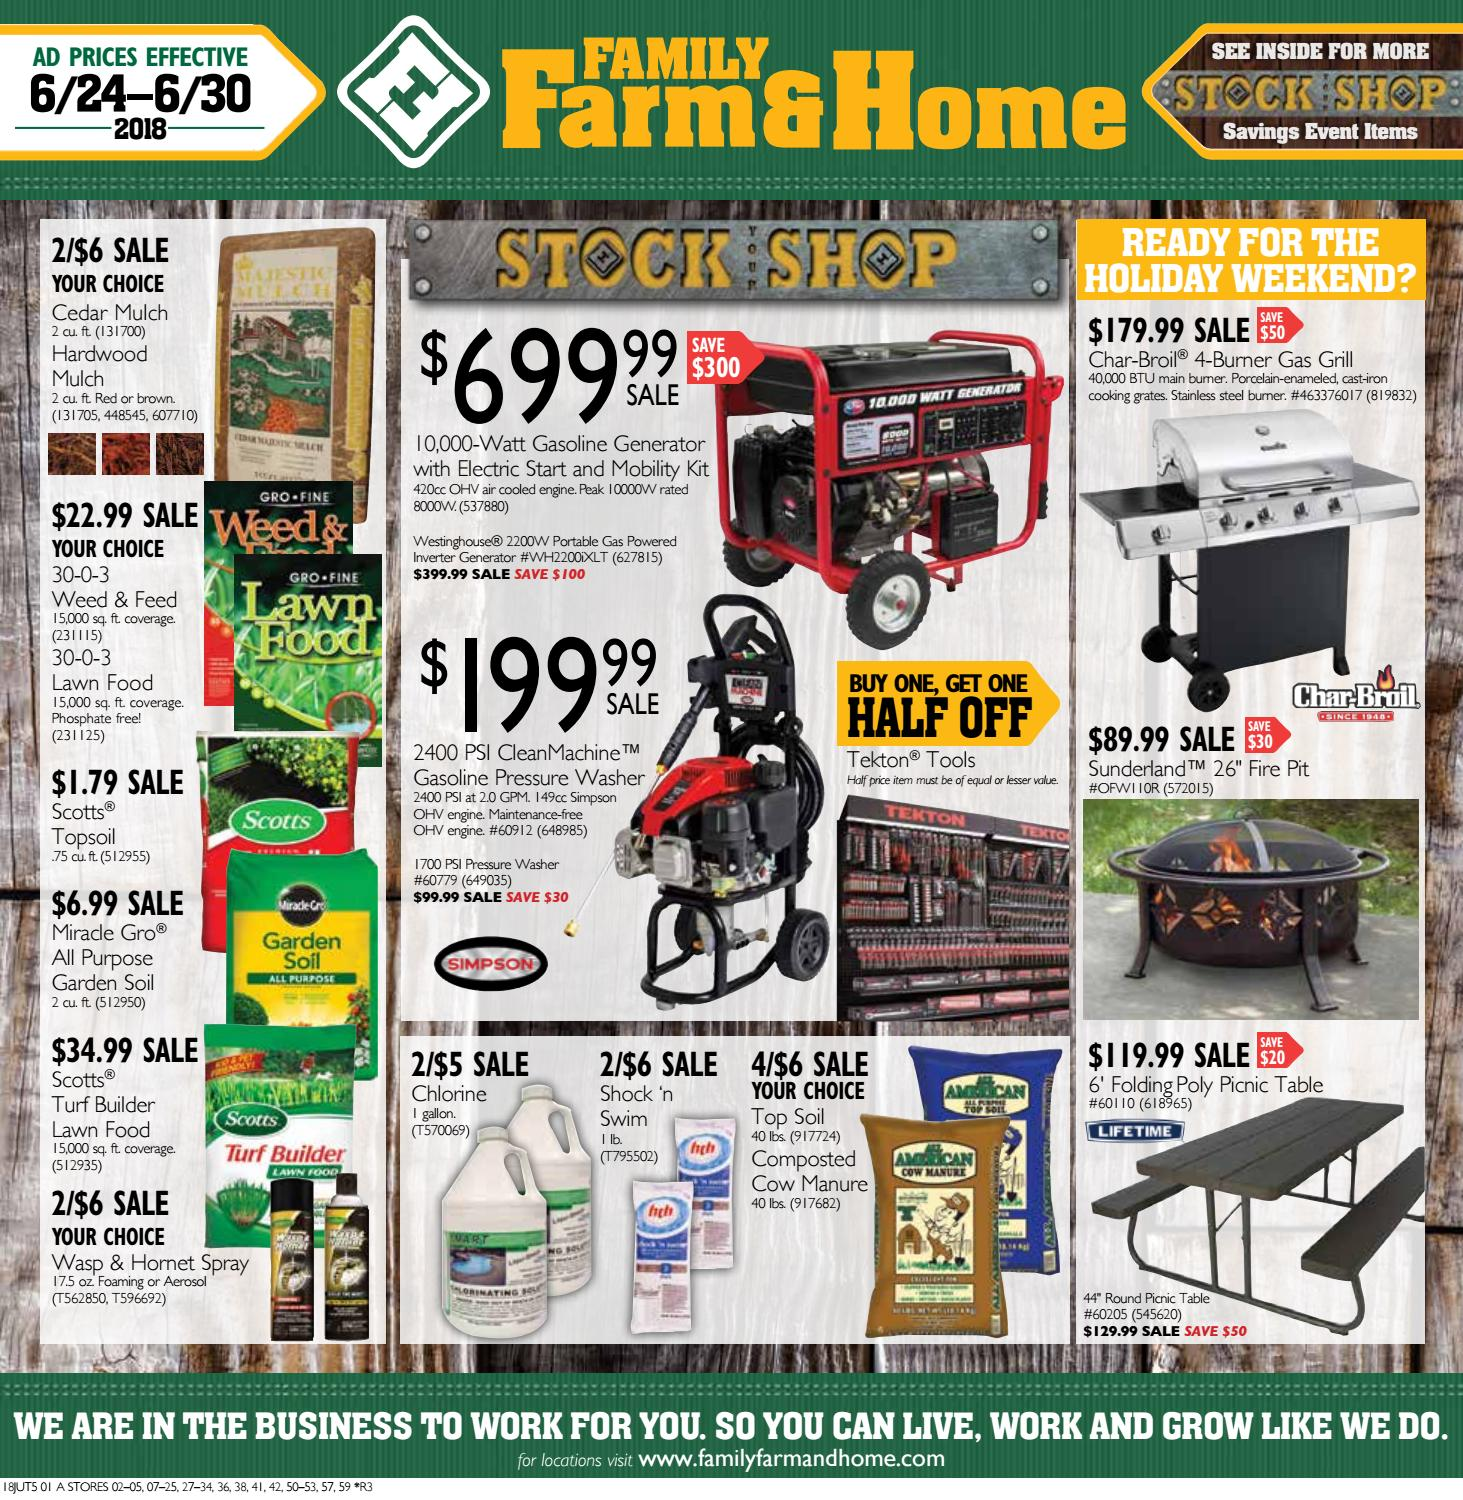 Family Farm & Home 18JUT5 Ad (Effective June 24-30, 2018) by